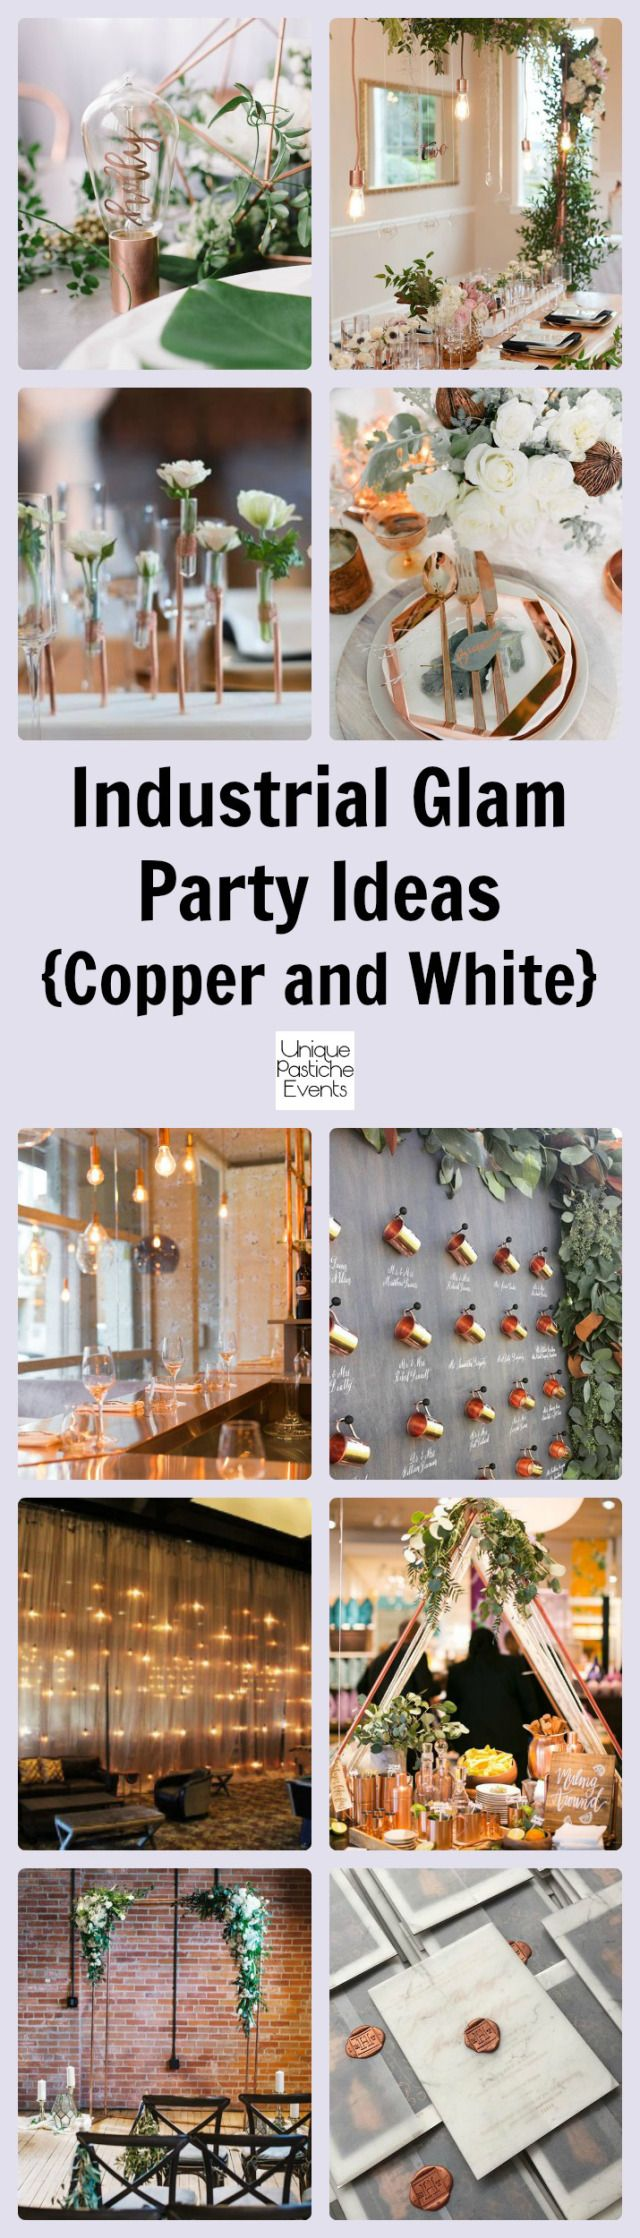 Industrial Glam Party in Copper and White #IdeaBoard #InspirationBoard